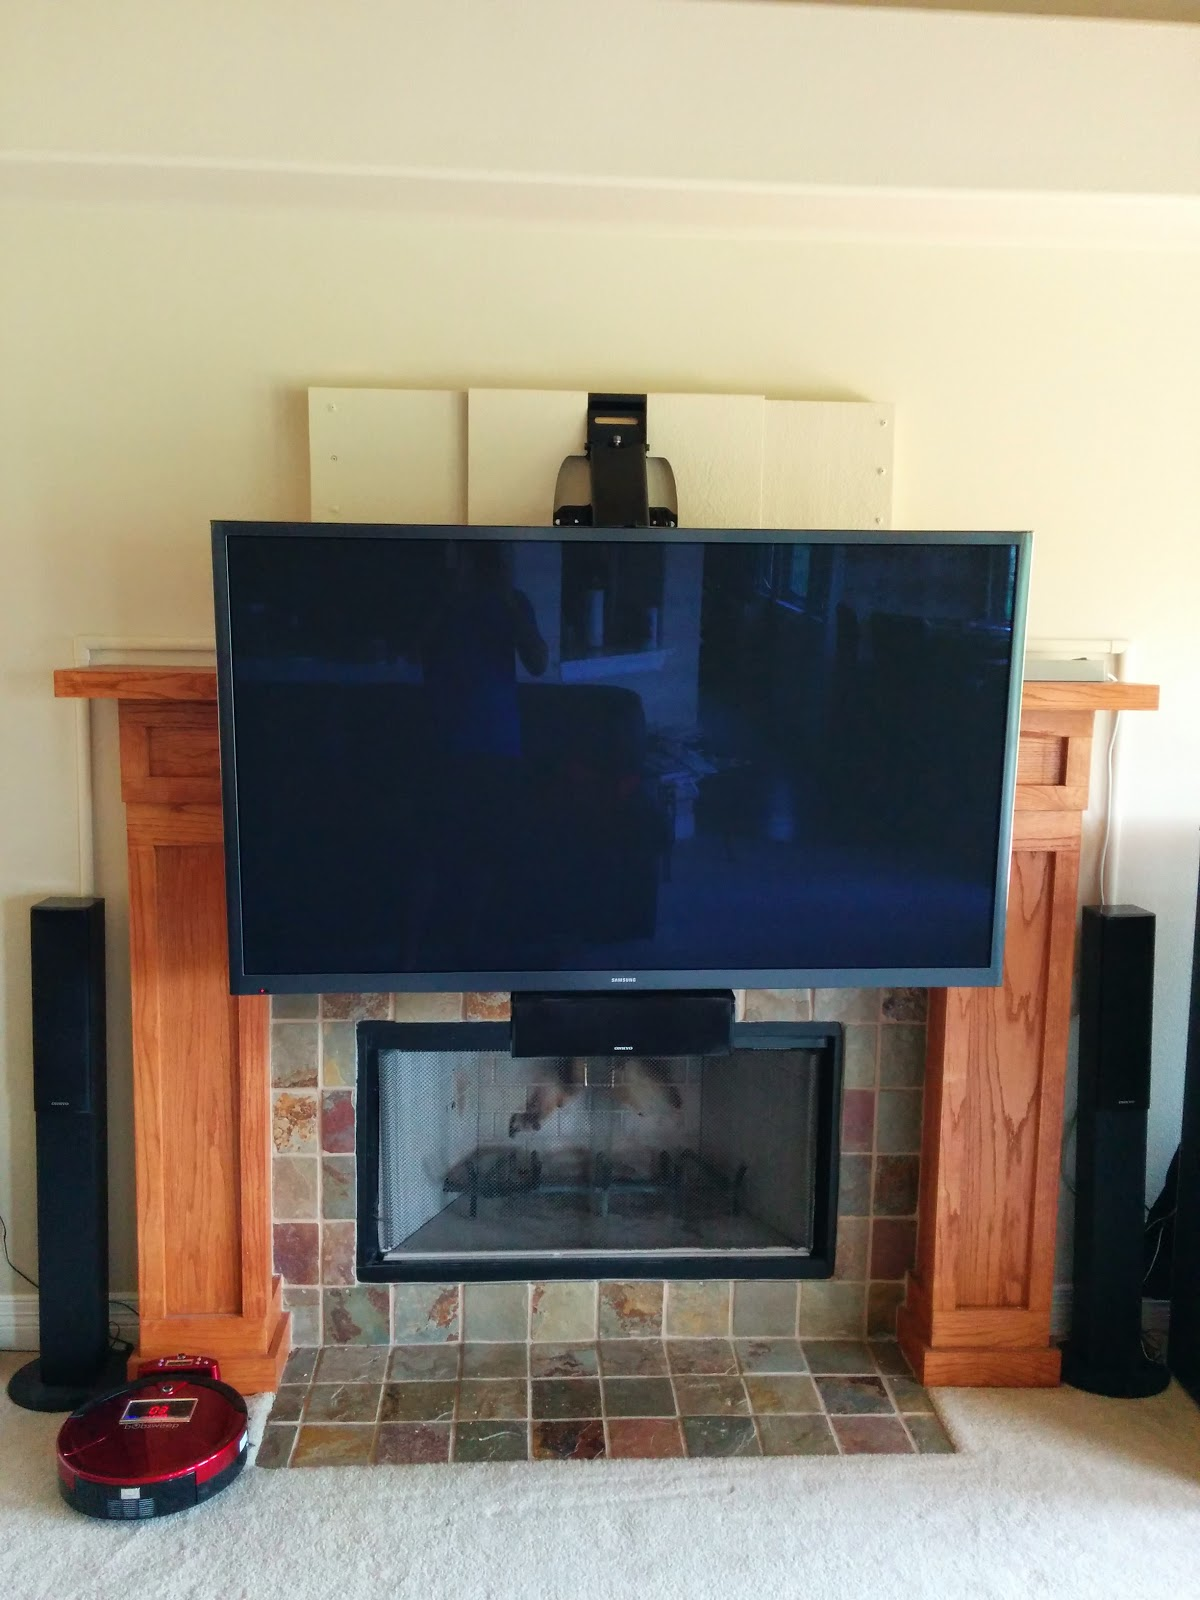 Mounting a 64inch Plasma TV over a Fireplace | Muthu's ...